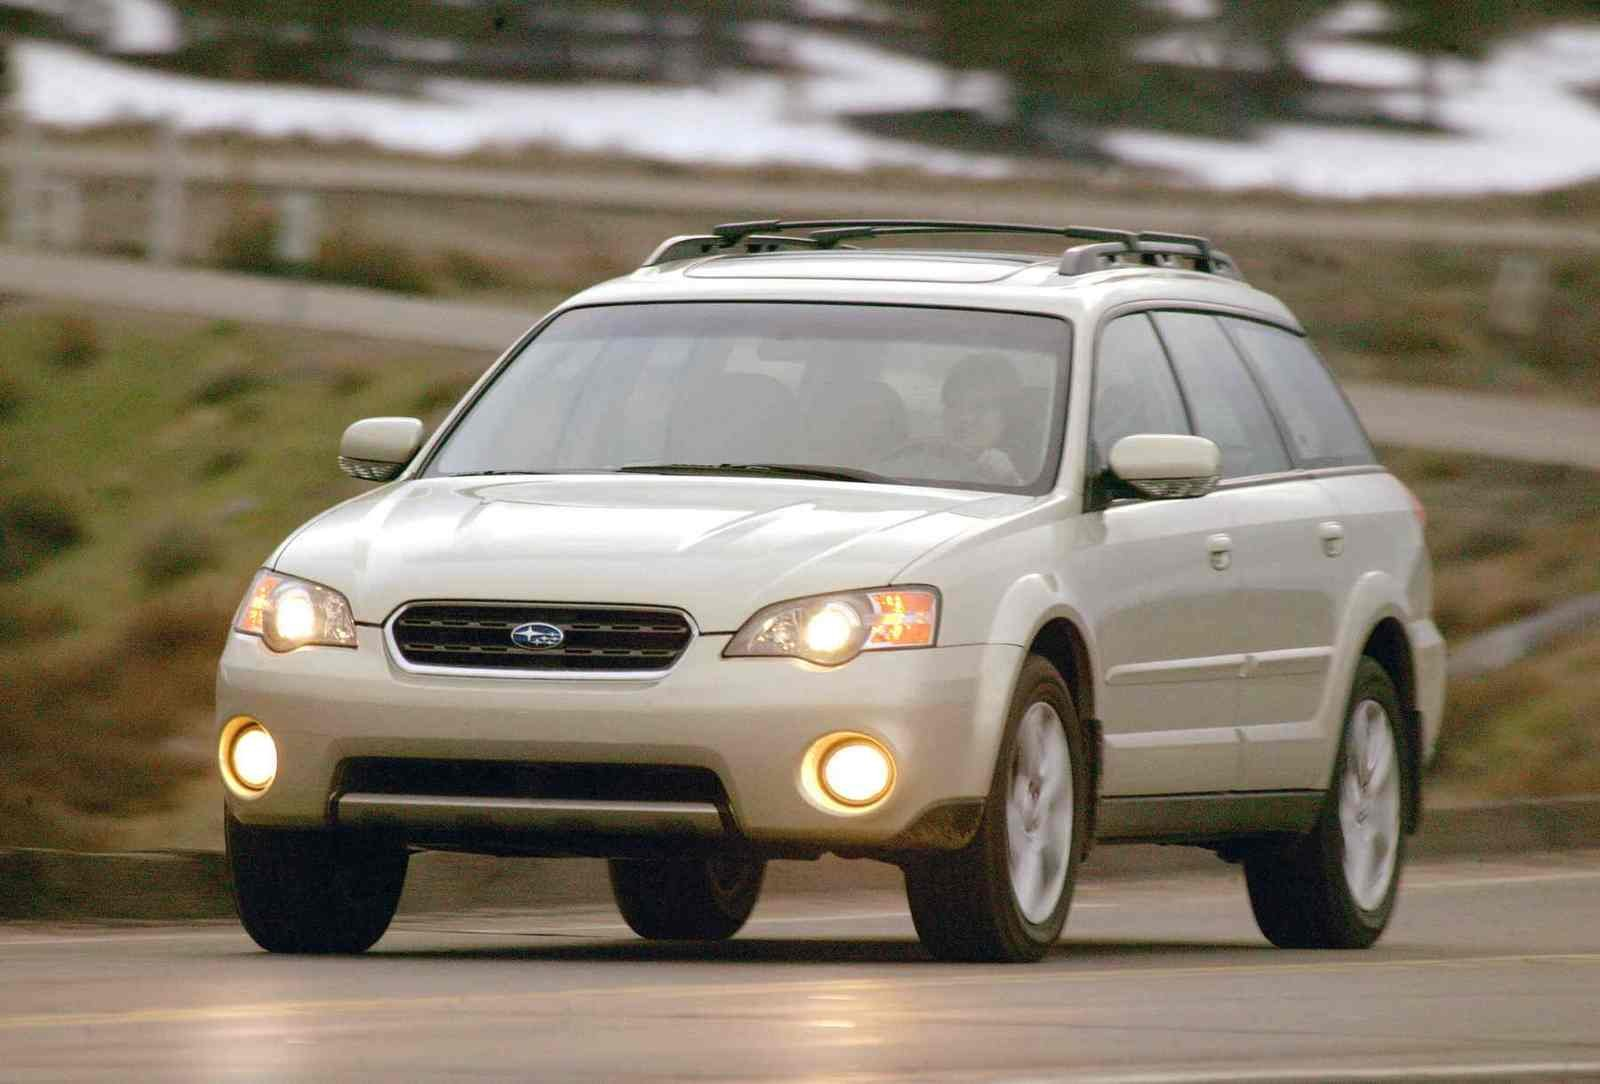 2006 subaru outback picture 44225 car review top speed. Black Bedroom Furniture Sets. Home Design Ideas